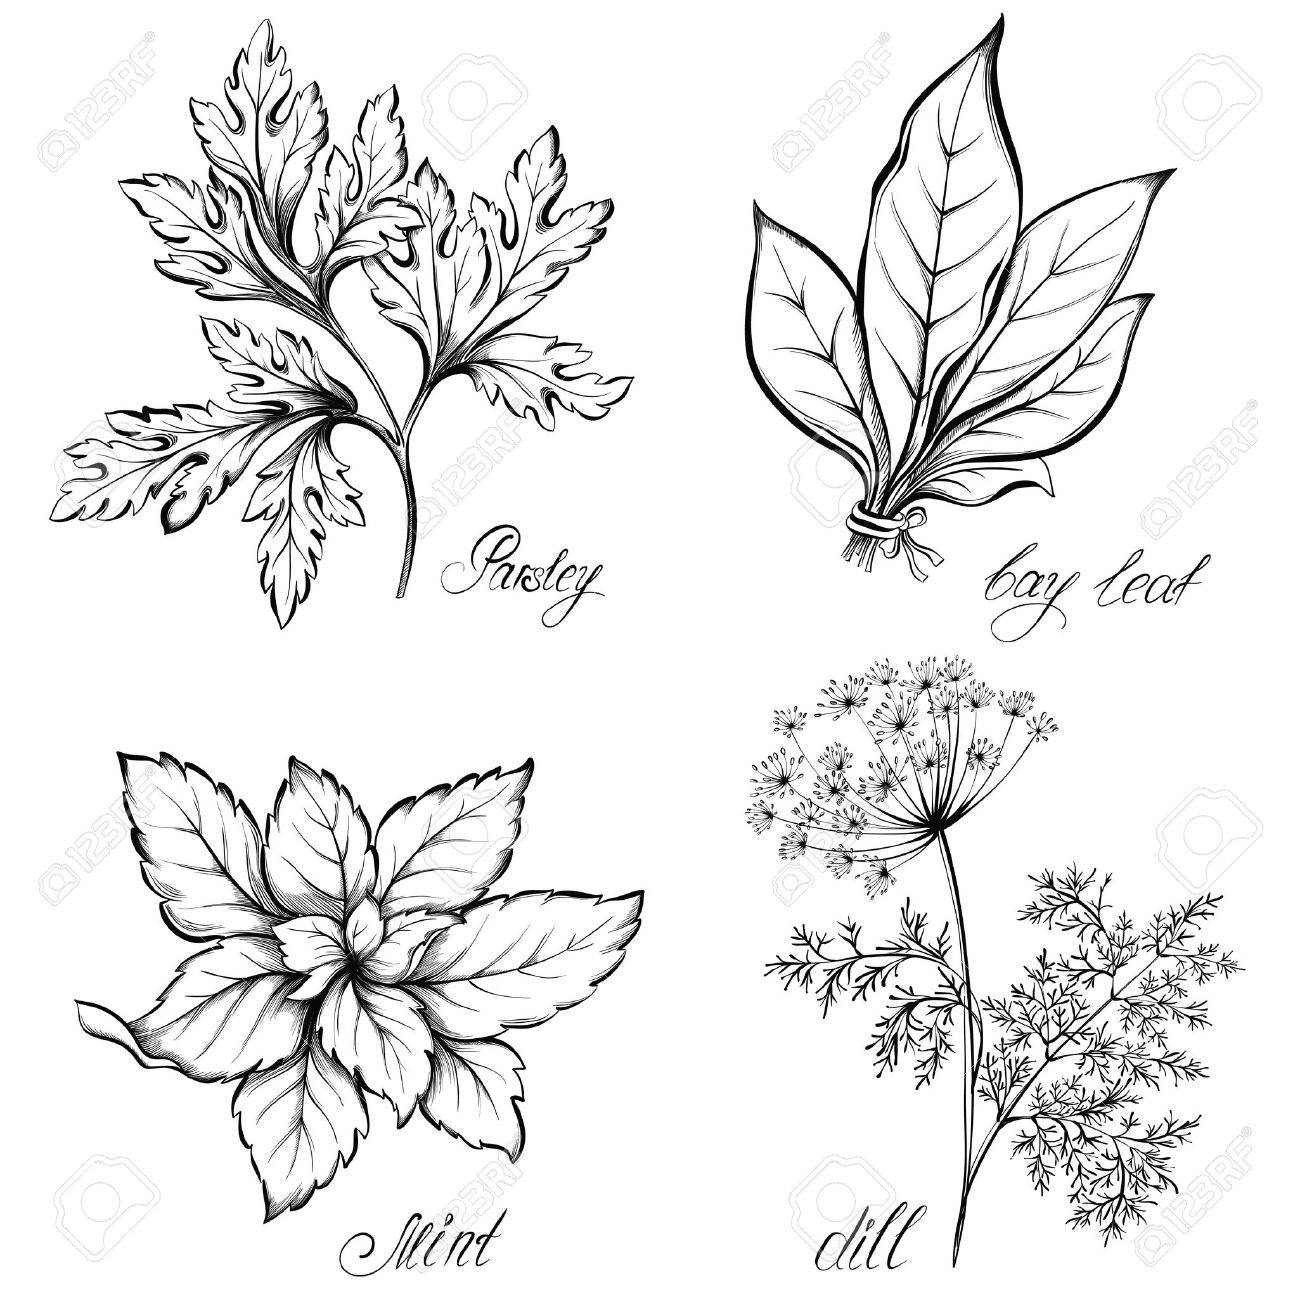 Kitchen herbs and spices. Dill, parsley, mint and bay leaf. Hand drawn vector illustration - 53584908